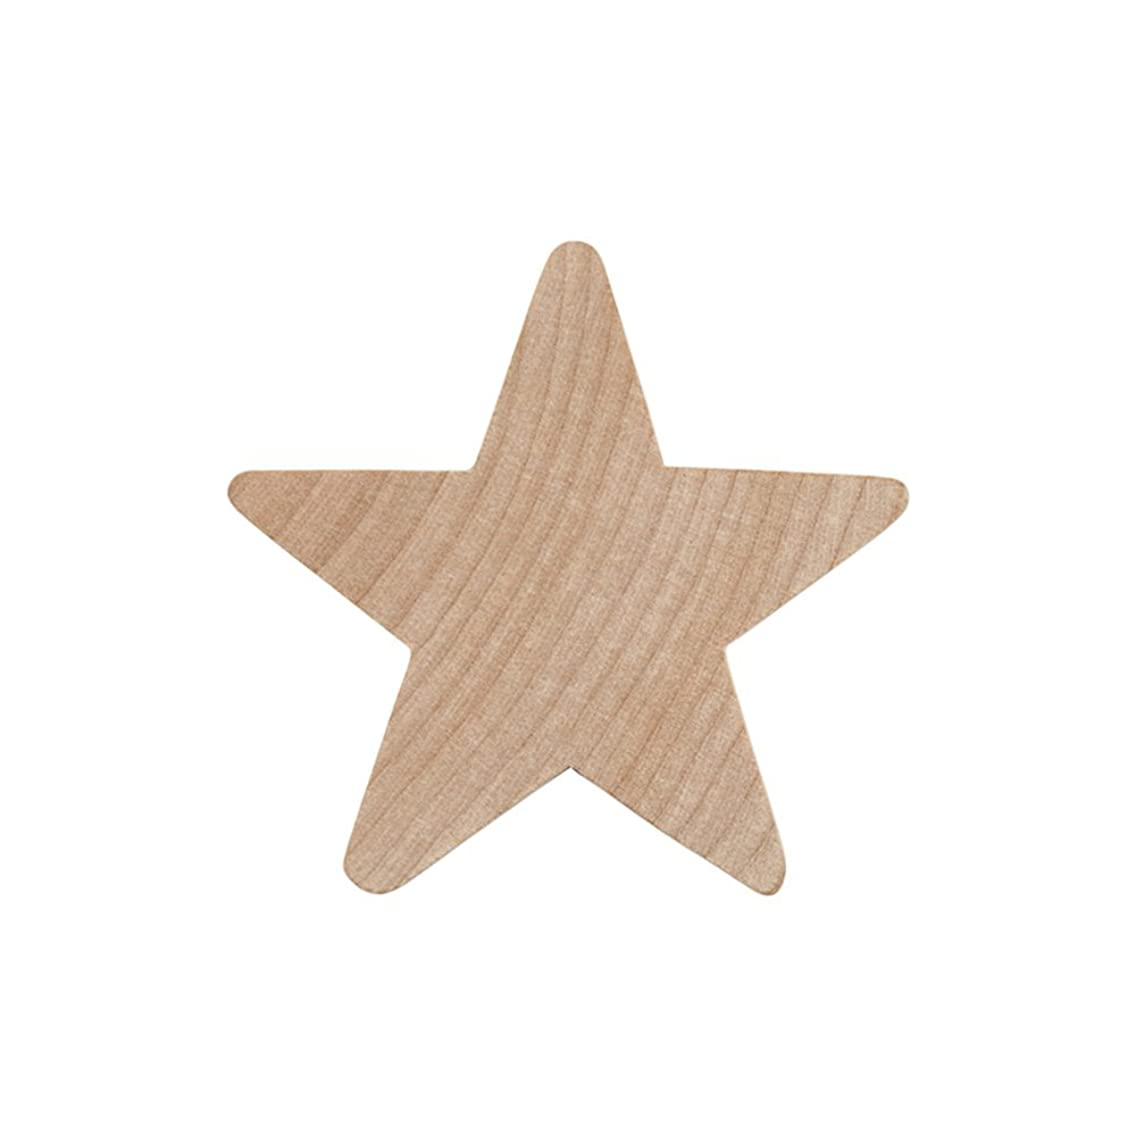 """2"""" Wood Star, Natural Unfinished Wooden Star Cutout Shape (2 Inch) - Bag of 25"""